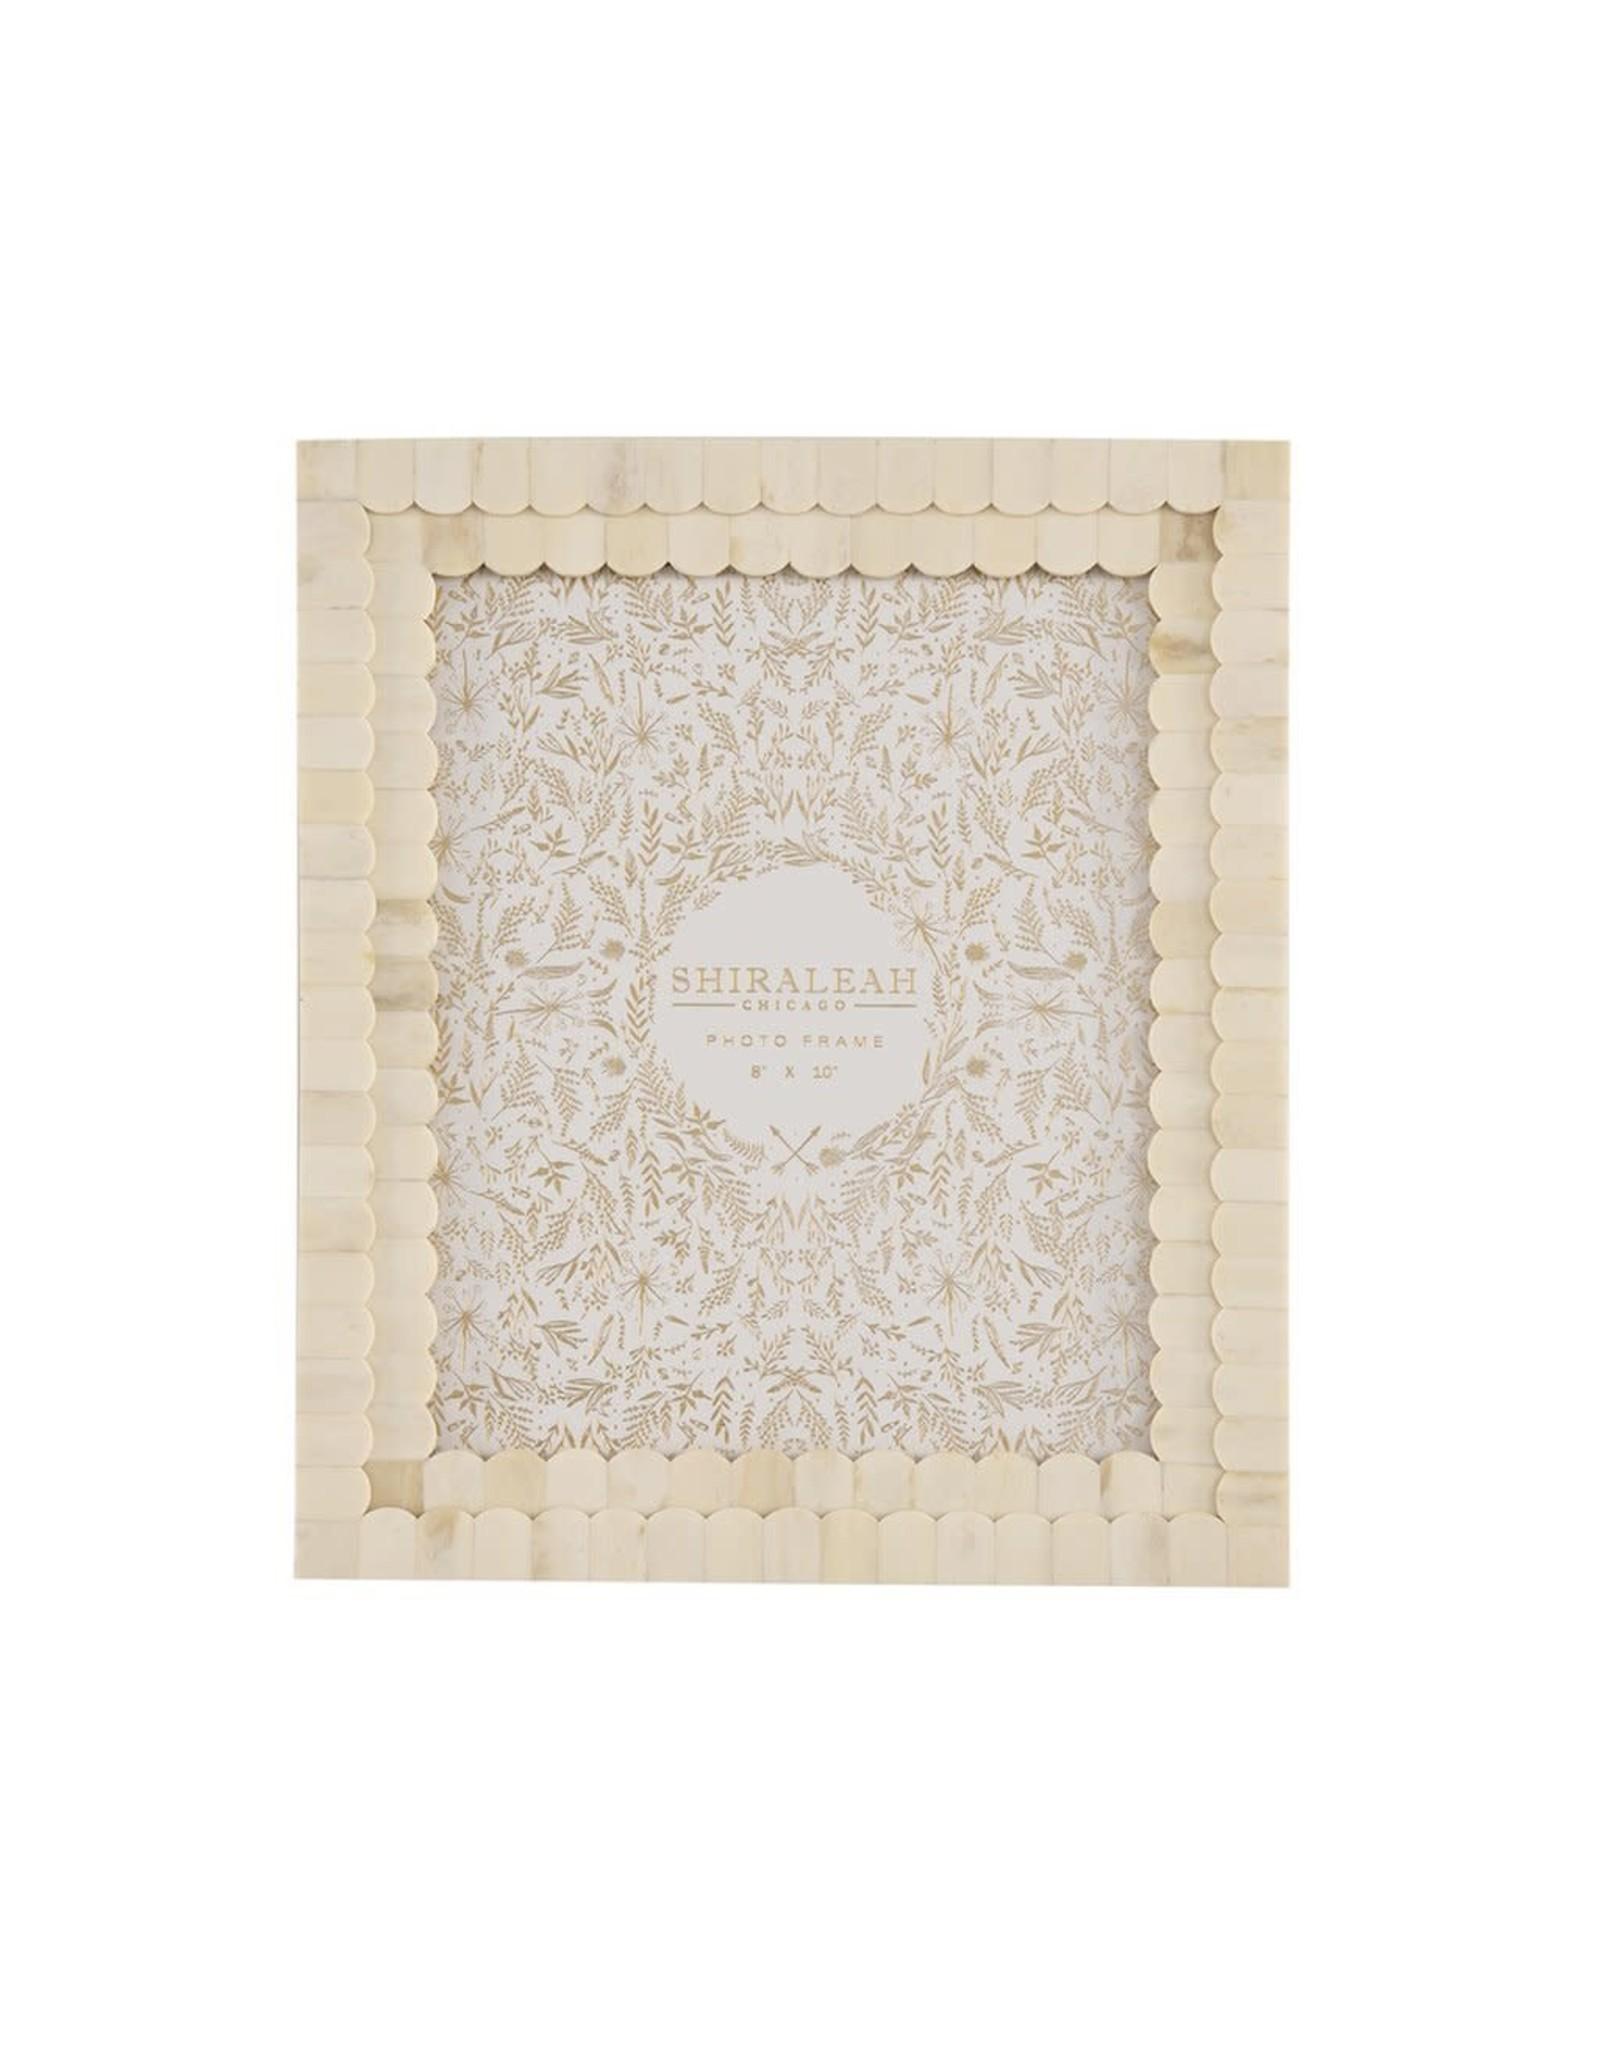 "MANSOUR SCALLOPED 8"" X 10"" GALLERY FRAME, IVORY"